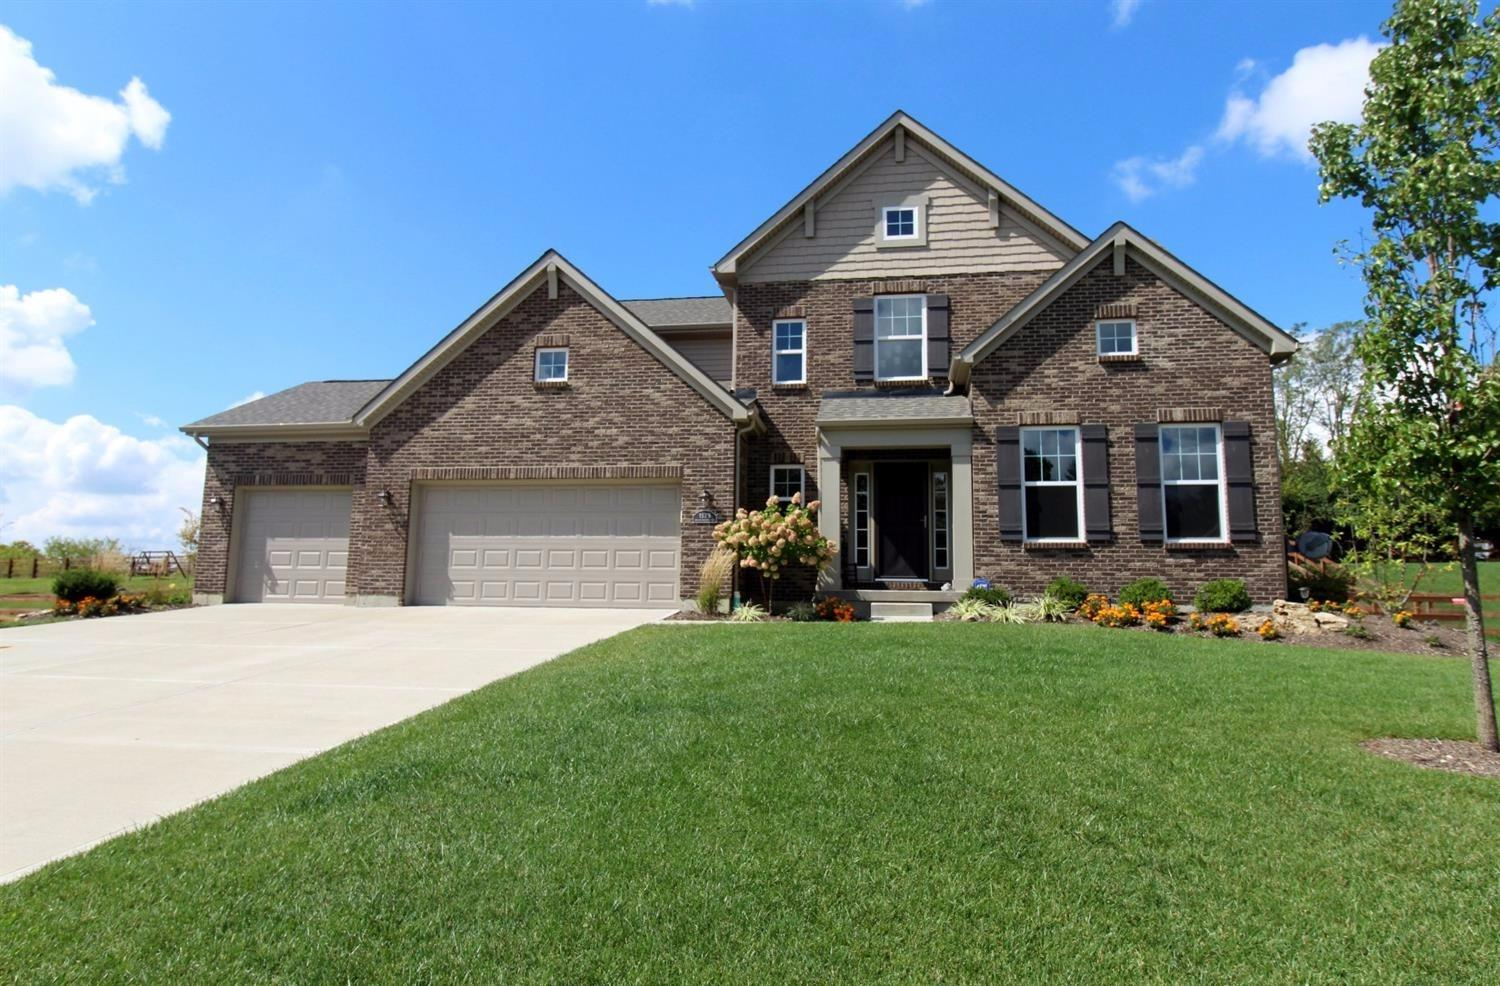 1579 Meadow View Ln Turtle Creek Twp., OH